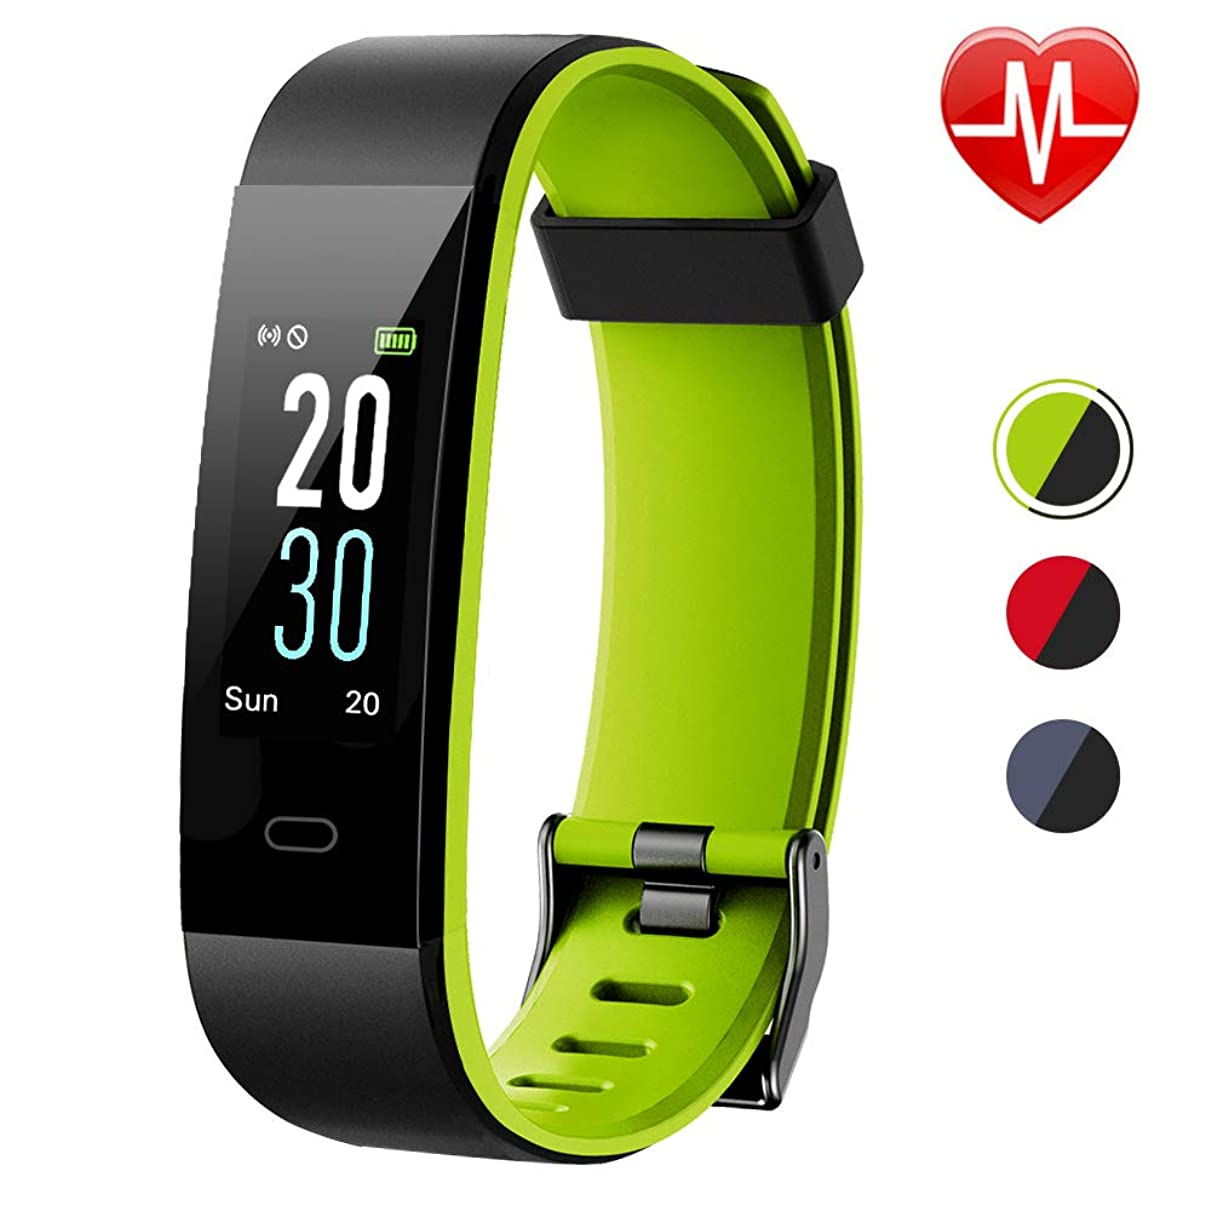 Lintelek Fitness Tracker Calorie Counter Heart Rate Sleep Monitor Pedometer, IP68 Waterproof Activity Tracker Connected GPS Odometer SNS Alarm Alert 14 Sports Modes 2019 Updated Version Men Women Kids